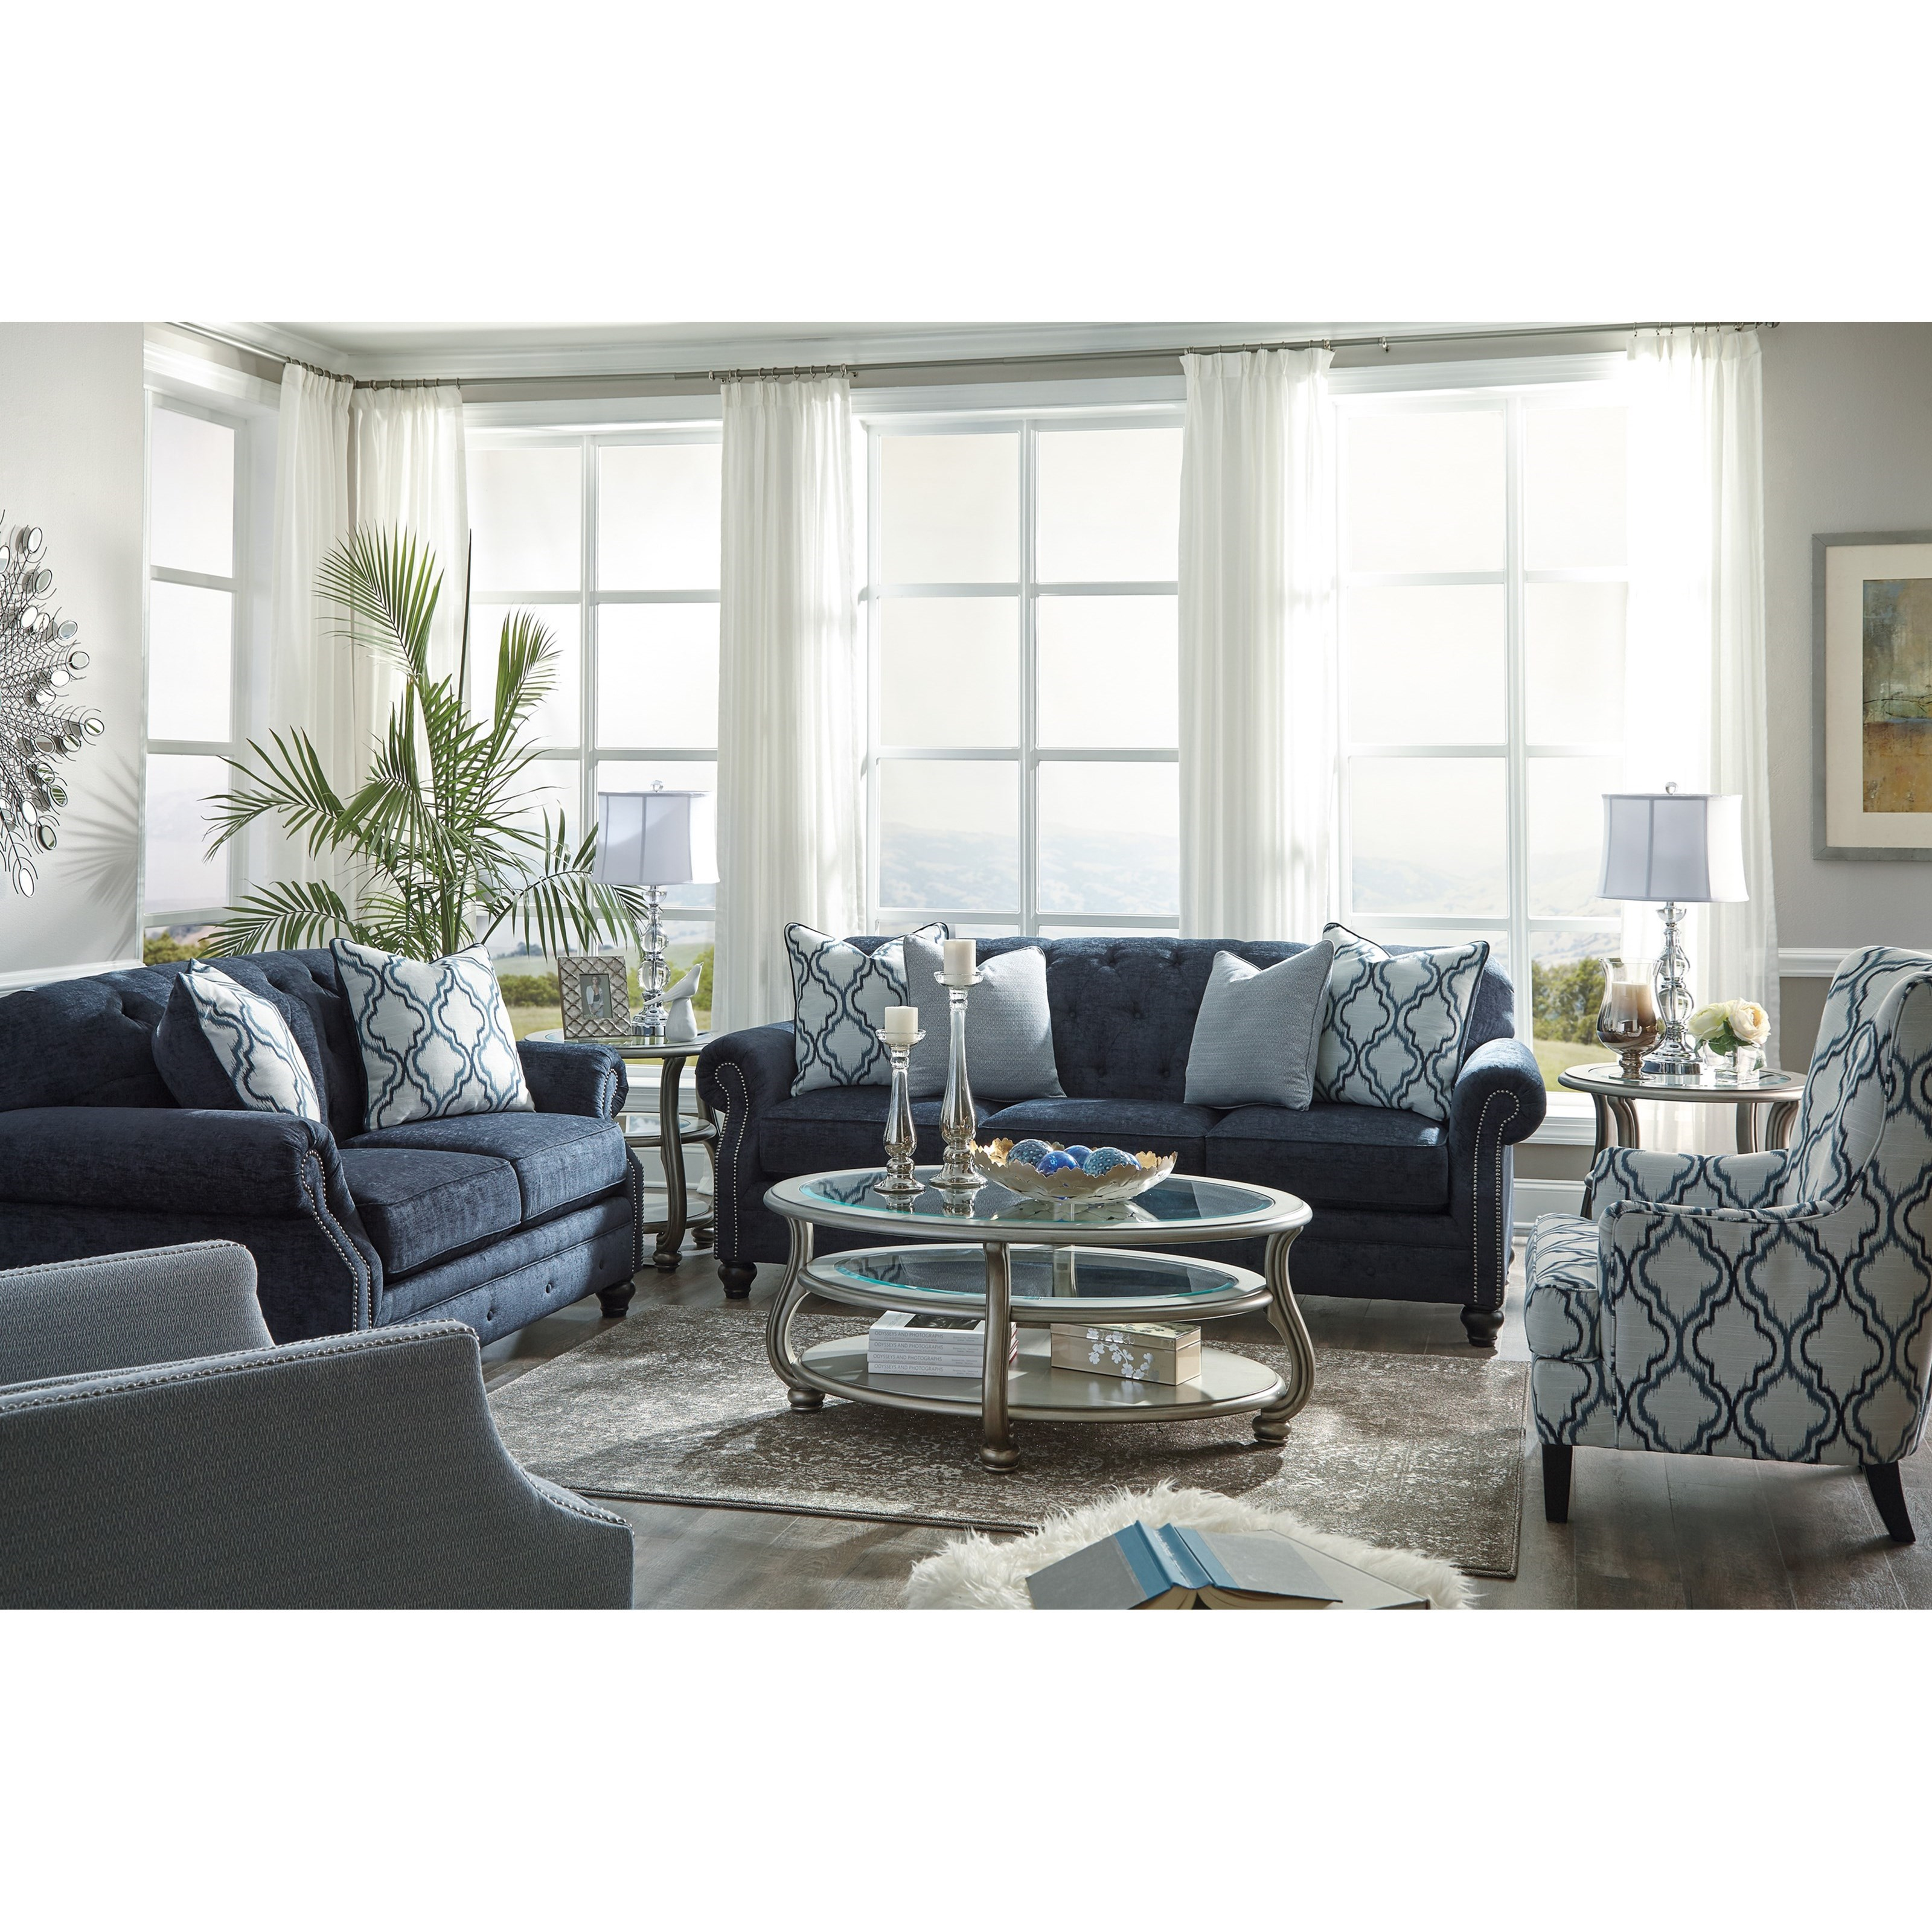 Benchcraft Lavernia 7130421 Transitional Wing Back Accent